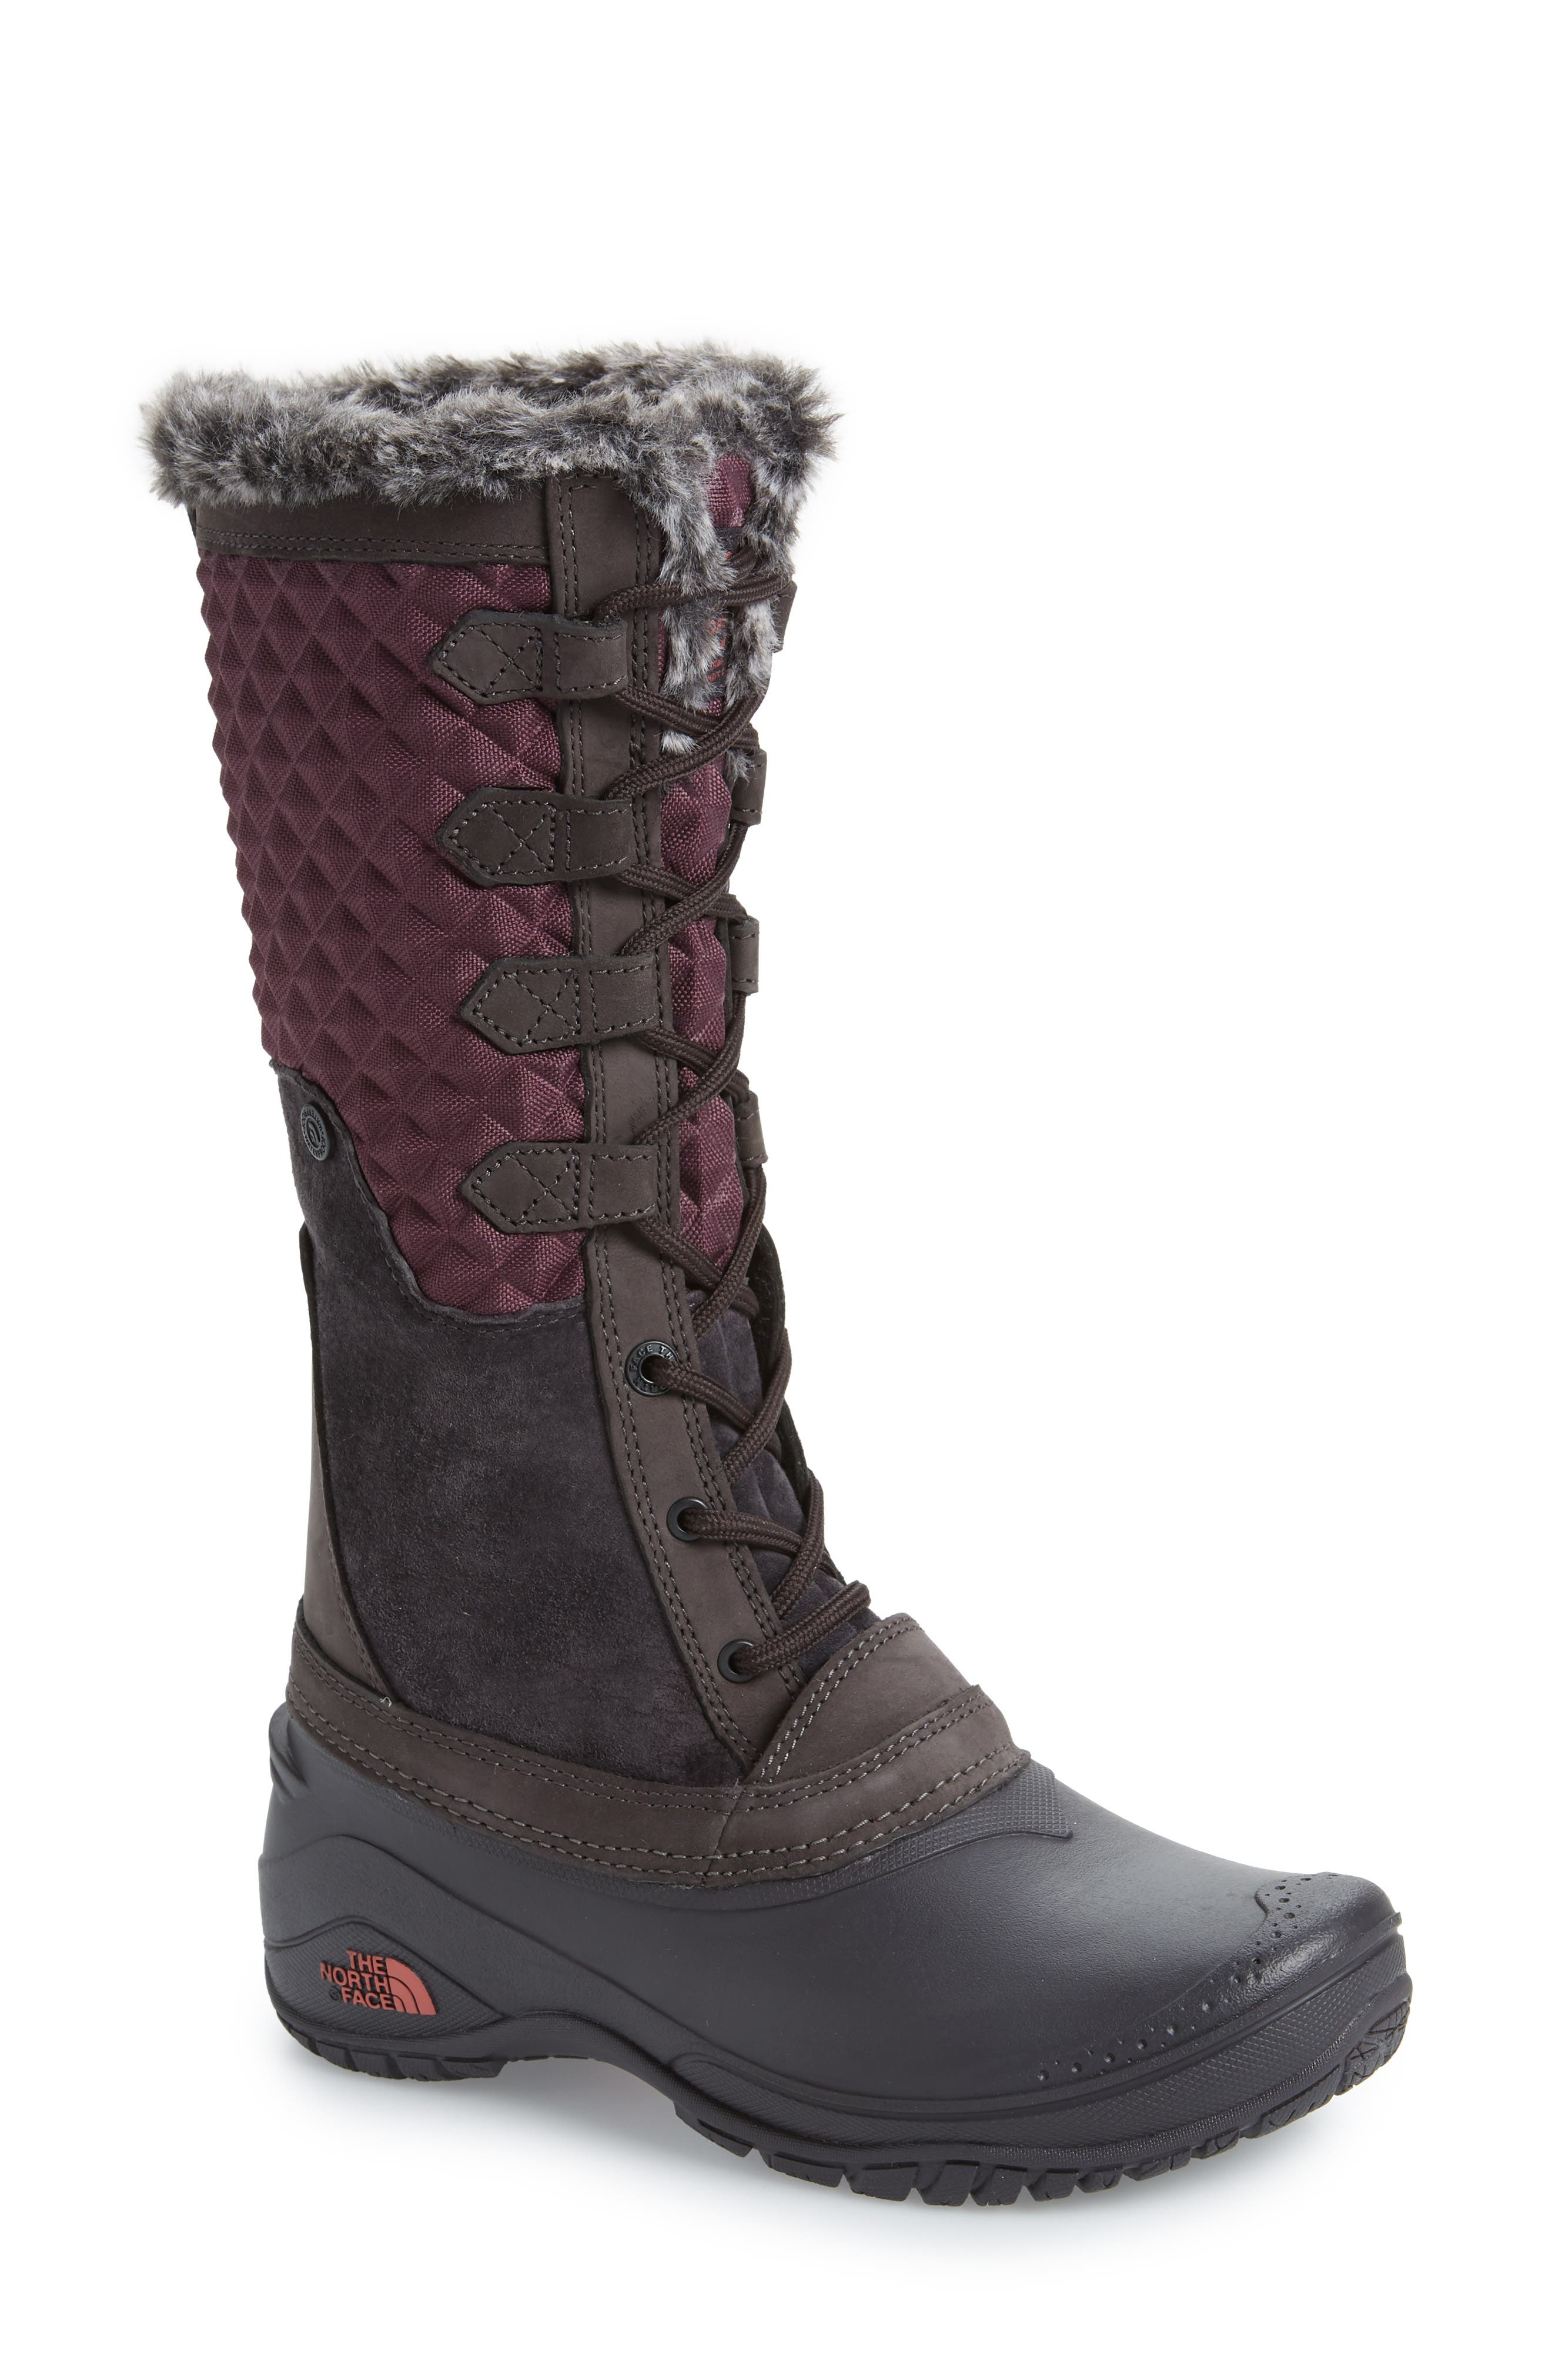 THE NORTH FACE, Shellista III Tall Waterproof Insulated Winter Boot, Main thumbnail 1, color, FIG/ WEATHERED BLACK